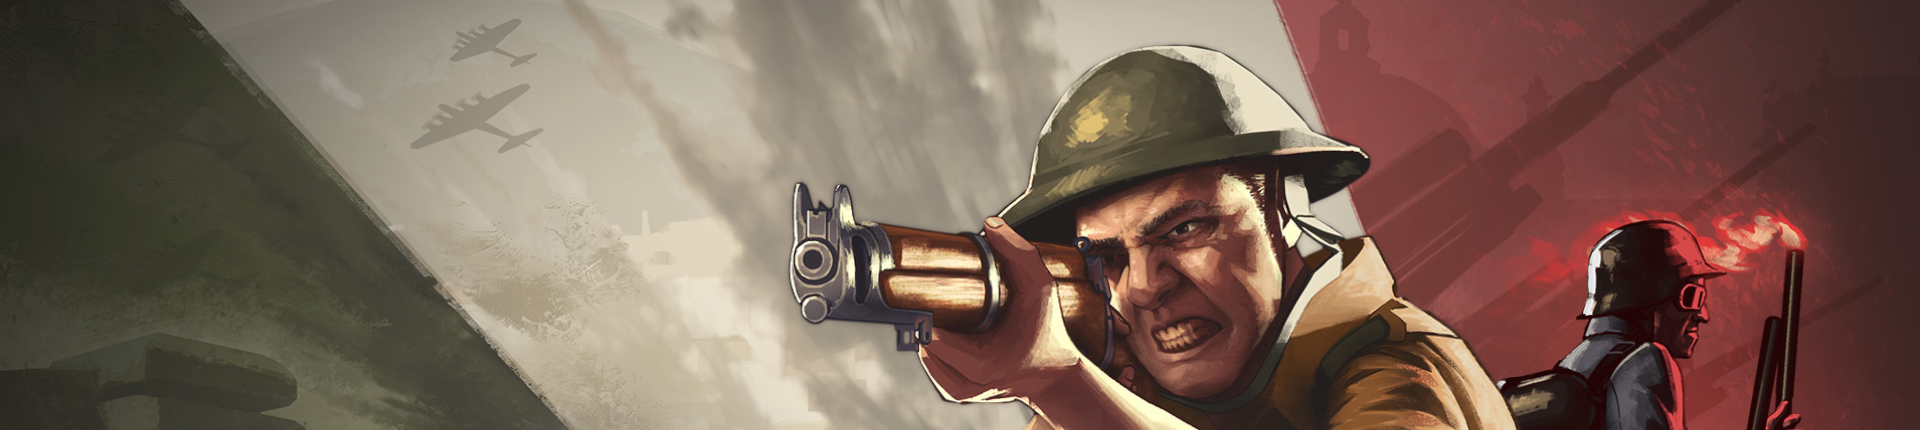 Day of Infamy Update March 17th